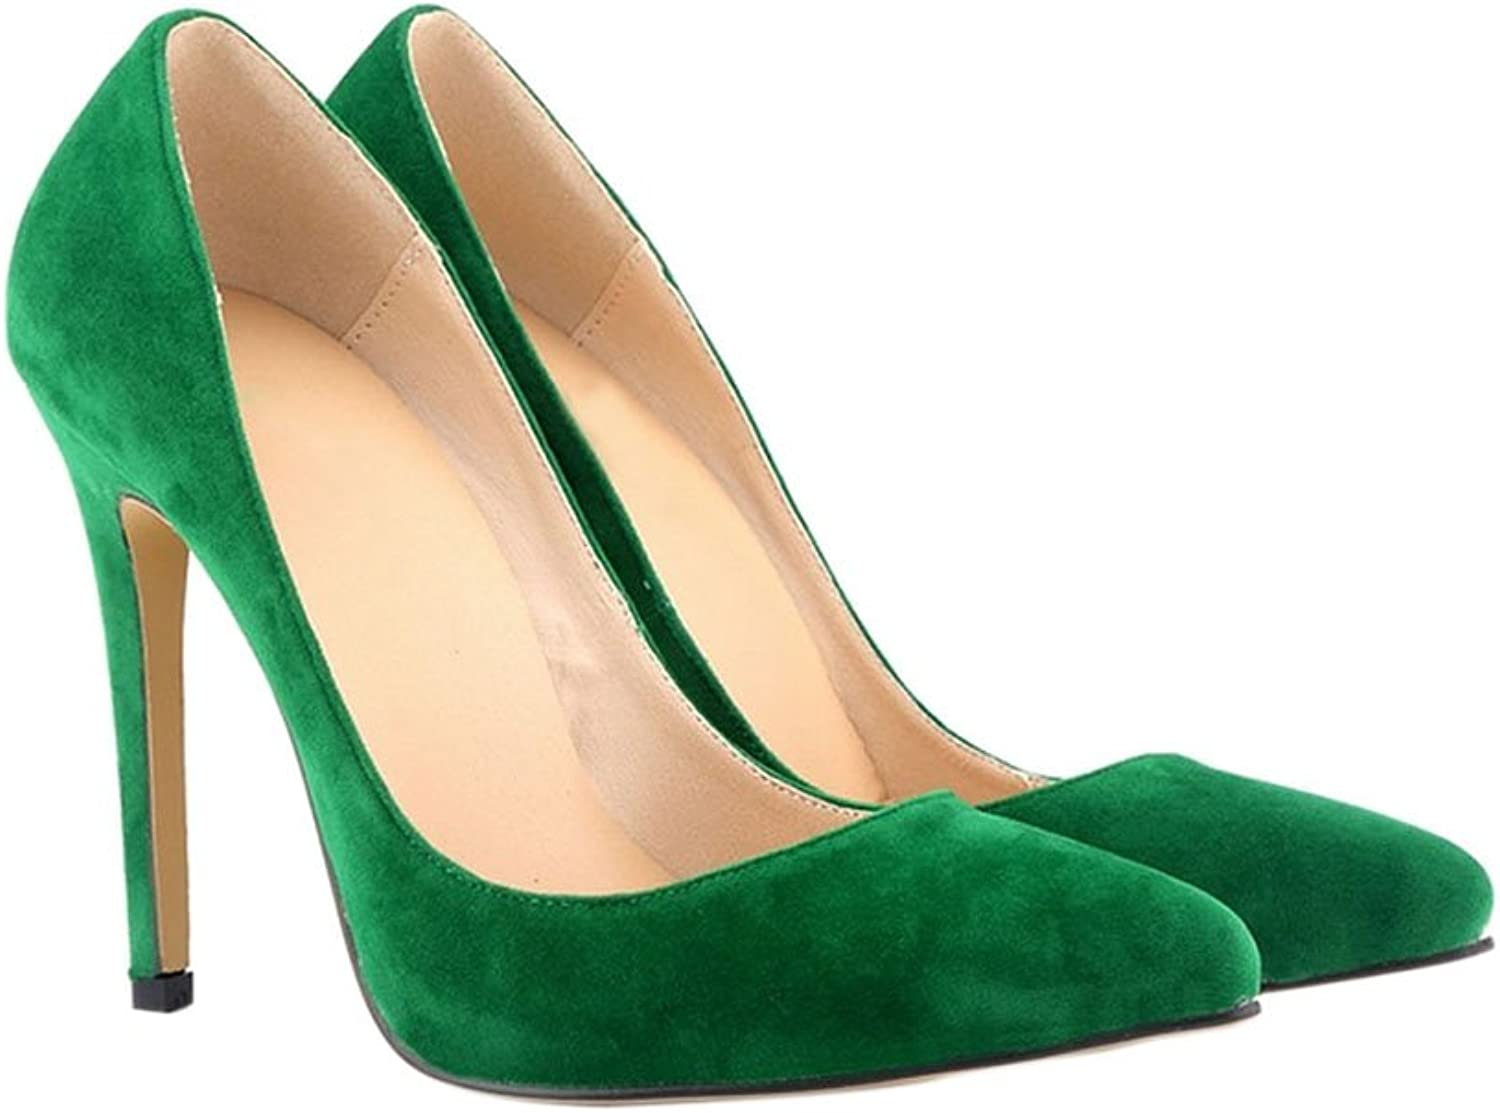 Meijunter Ladies 11CM High Heel Pointed Stiletto Suede Leather Classic Pumps shoes Green